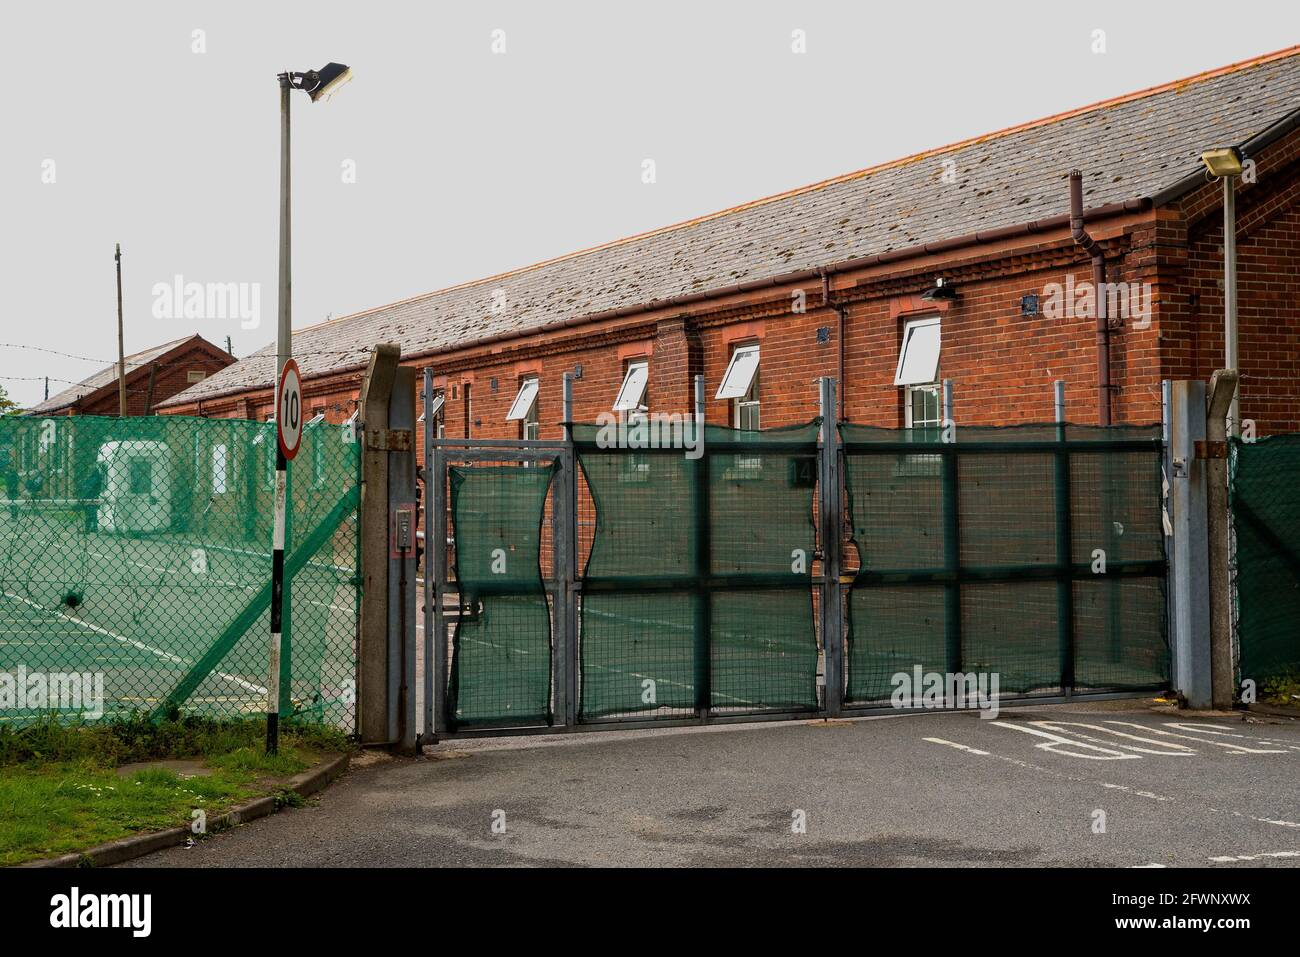 since-september-2020-ex-mod-napier-barracks-folkestone-have-been-used-by-the-home-office-to-provide-temporary-accommodation-for-single-adult-male-refugees-who-are-seeking-uk-asylum-the-camp-is-operated-by-clearspring-ready-homes-previously-around-25-of-the-camps-refugees-have-tested-positive-for-covid-19-caused-by-a-serious-lack-of-facility-for-social-distancing-the-barracks-have-also-been-declared-unsuitable-for-human-accommodation-by-independent-inspectors-high-fencing-around-the-napier-barracks-is-topped-by-barbed-wire-pictured-gate-entrance-to-the-napier-barracks-2FWNXWX.jpg